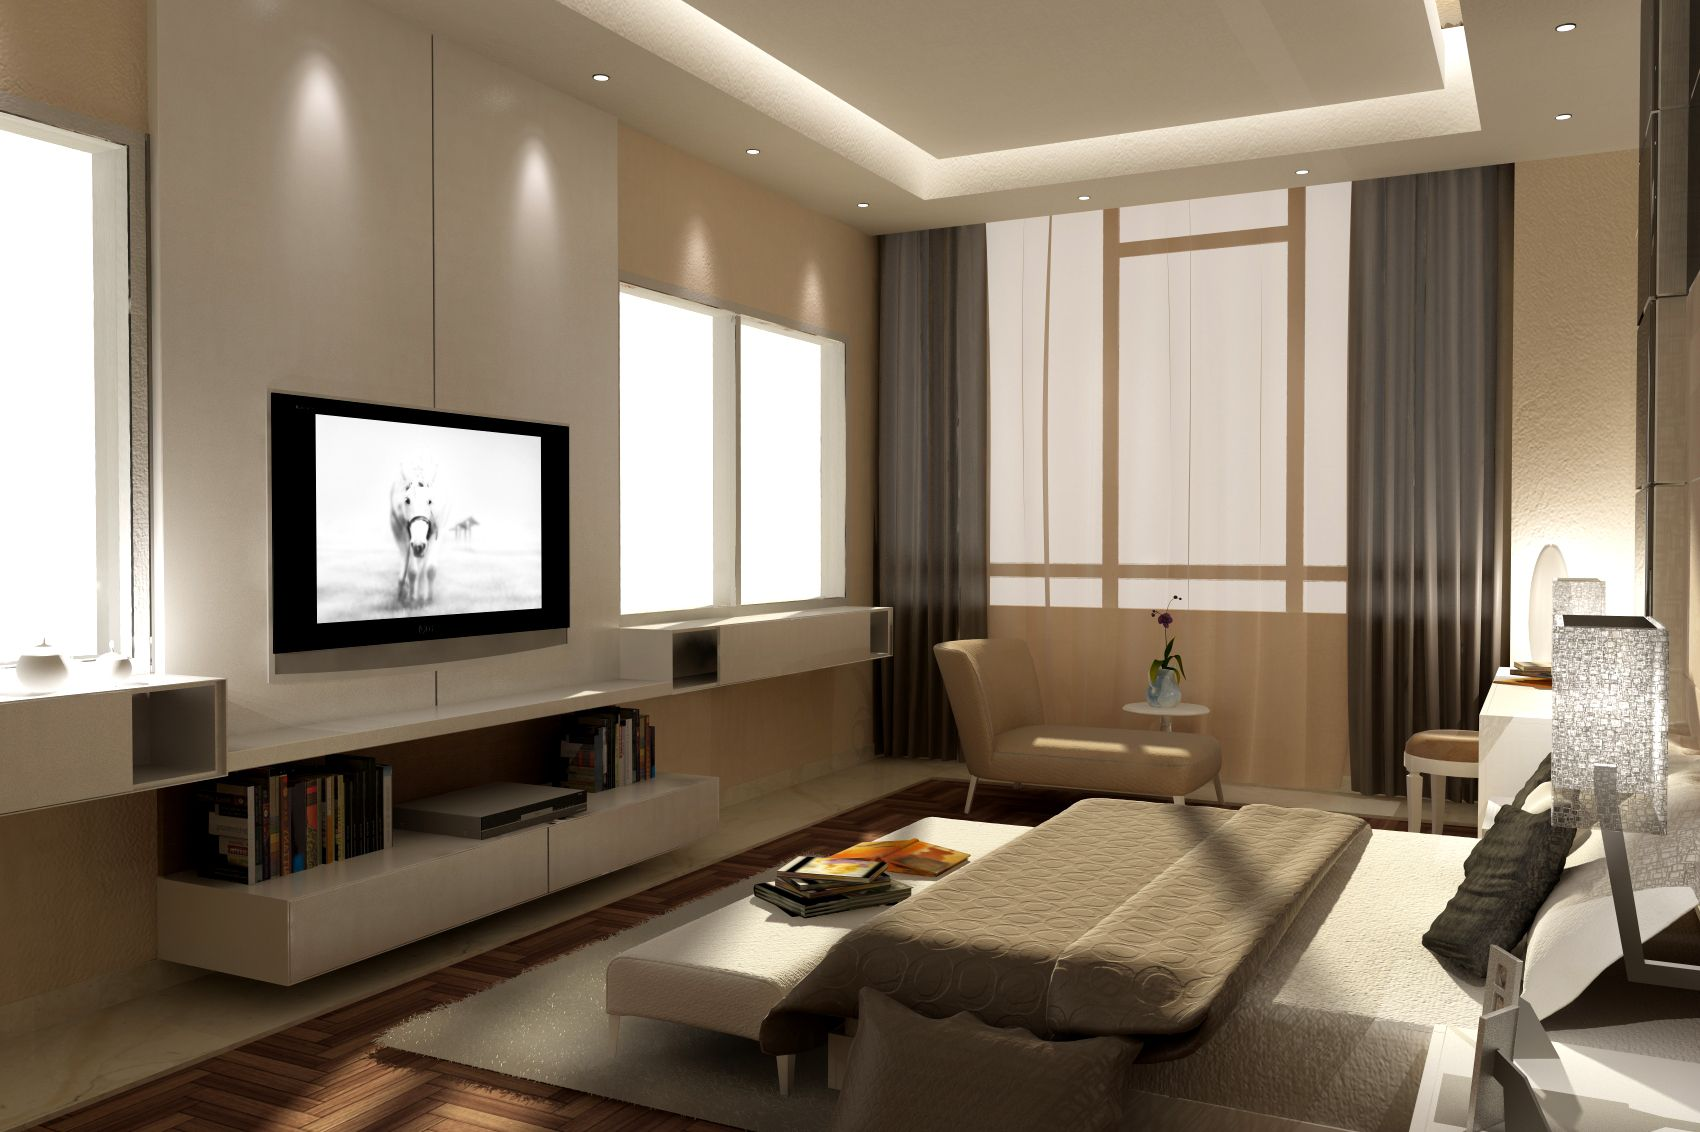 Bedroom modern bedroom interior design 3d max 3d for Contemporary interior design ideas